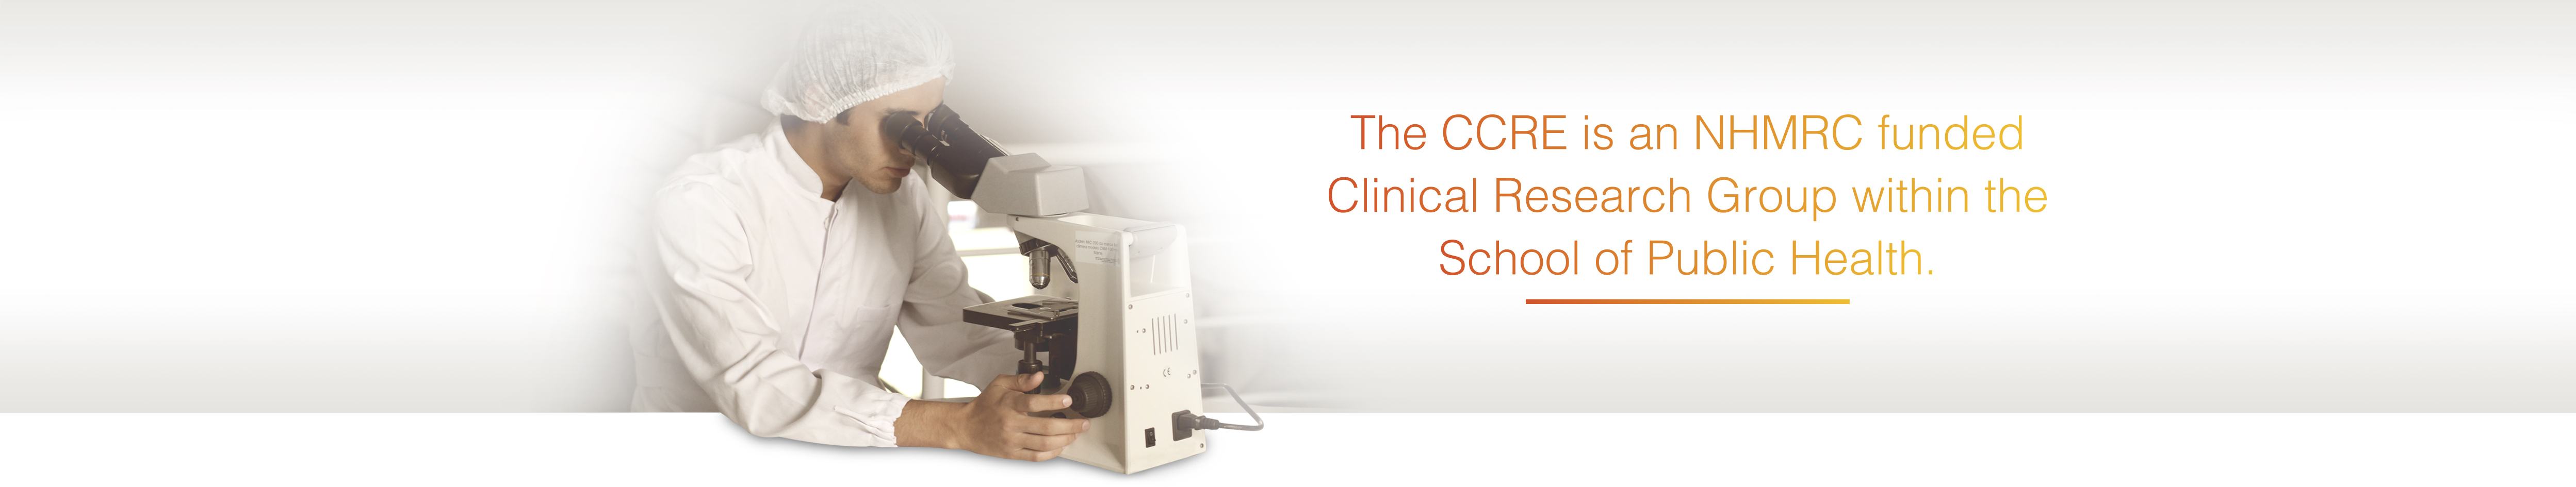 Clinical_Research